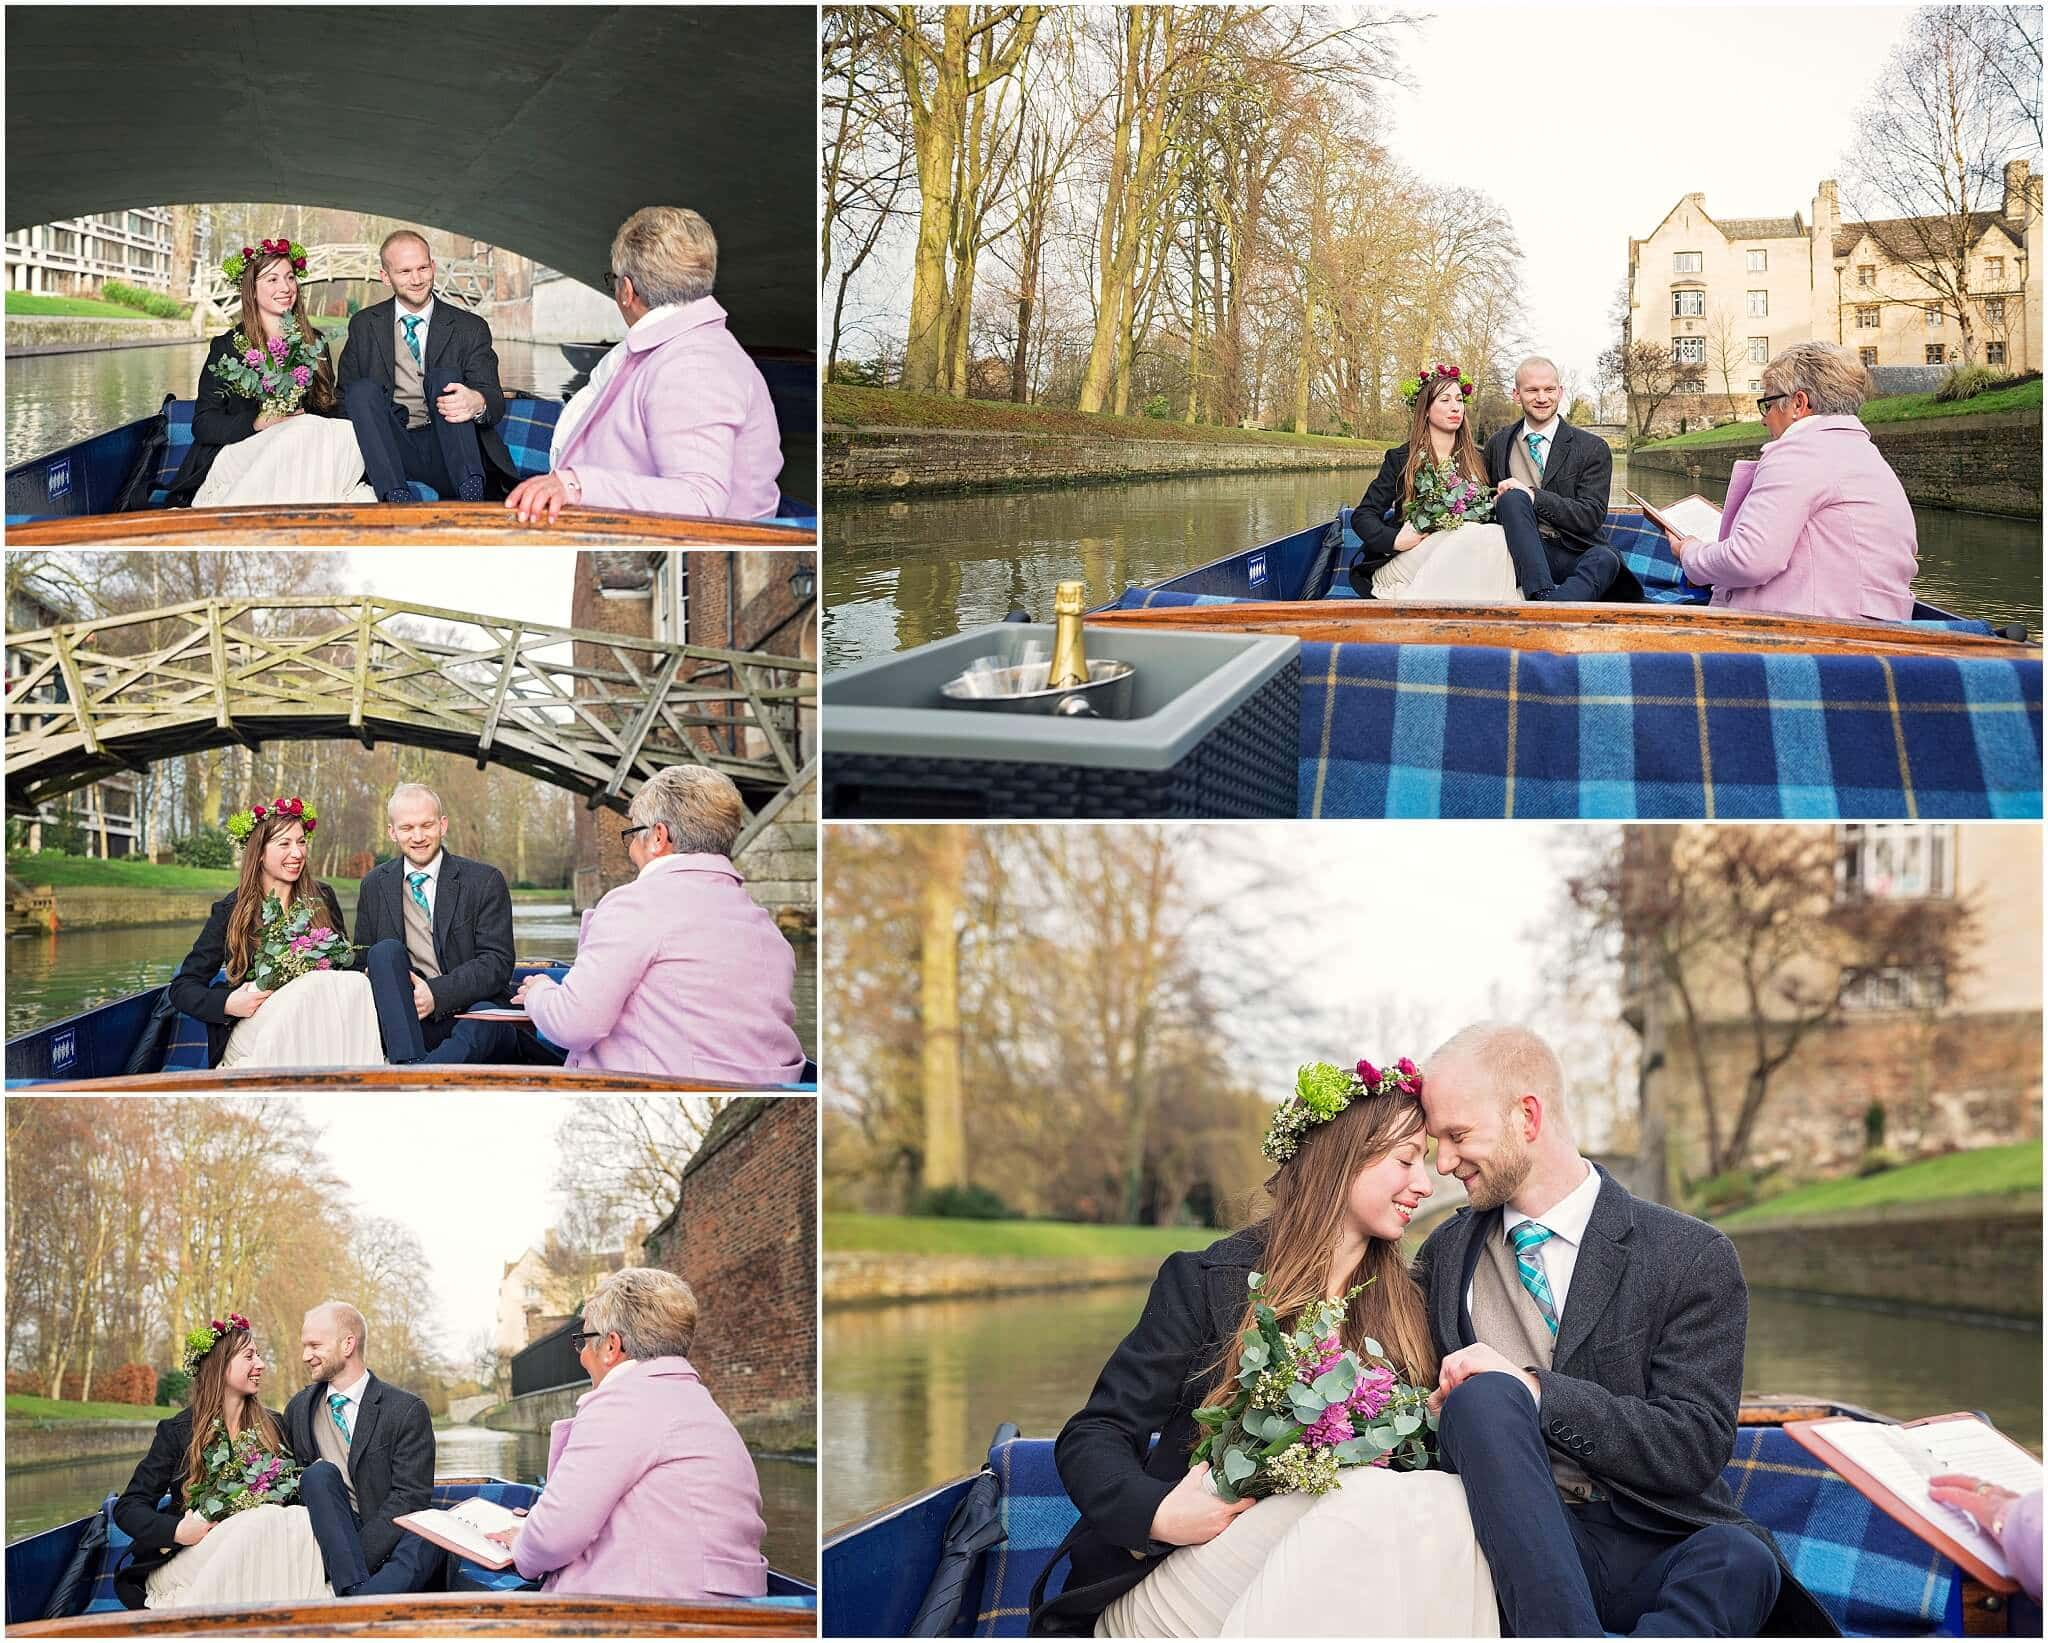 Elopement in Cambridge